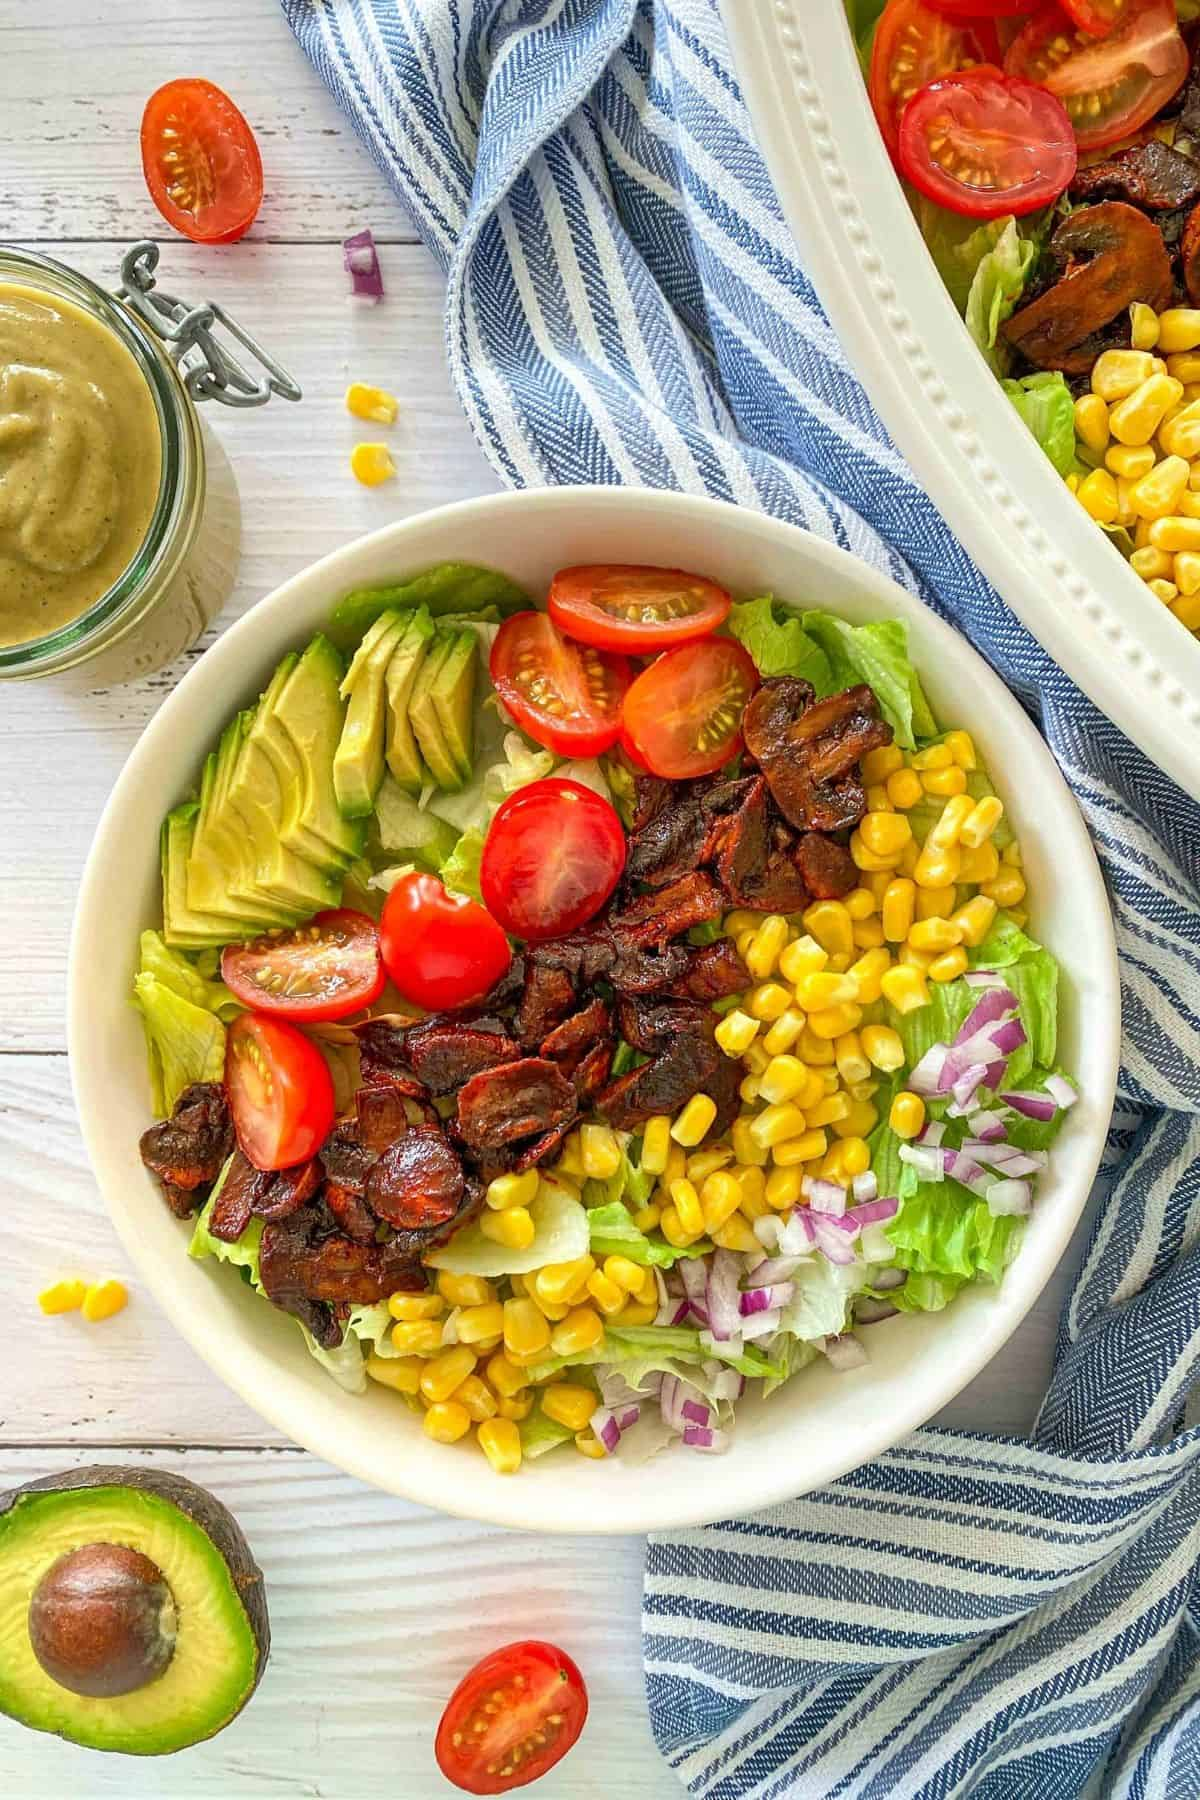 Lettuce, avocado slices, halved grape tomatoes, cooked mushrooms, corn kernels and red onion in white bowl.